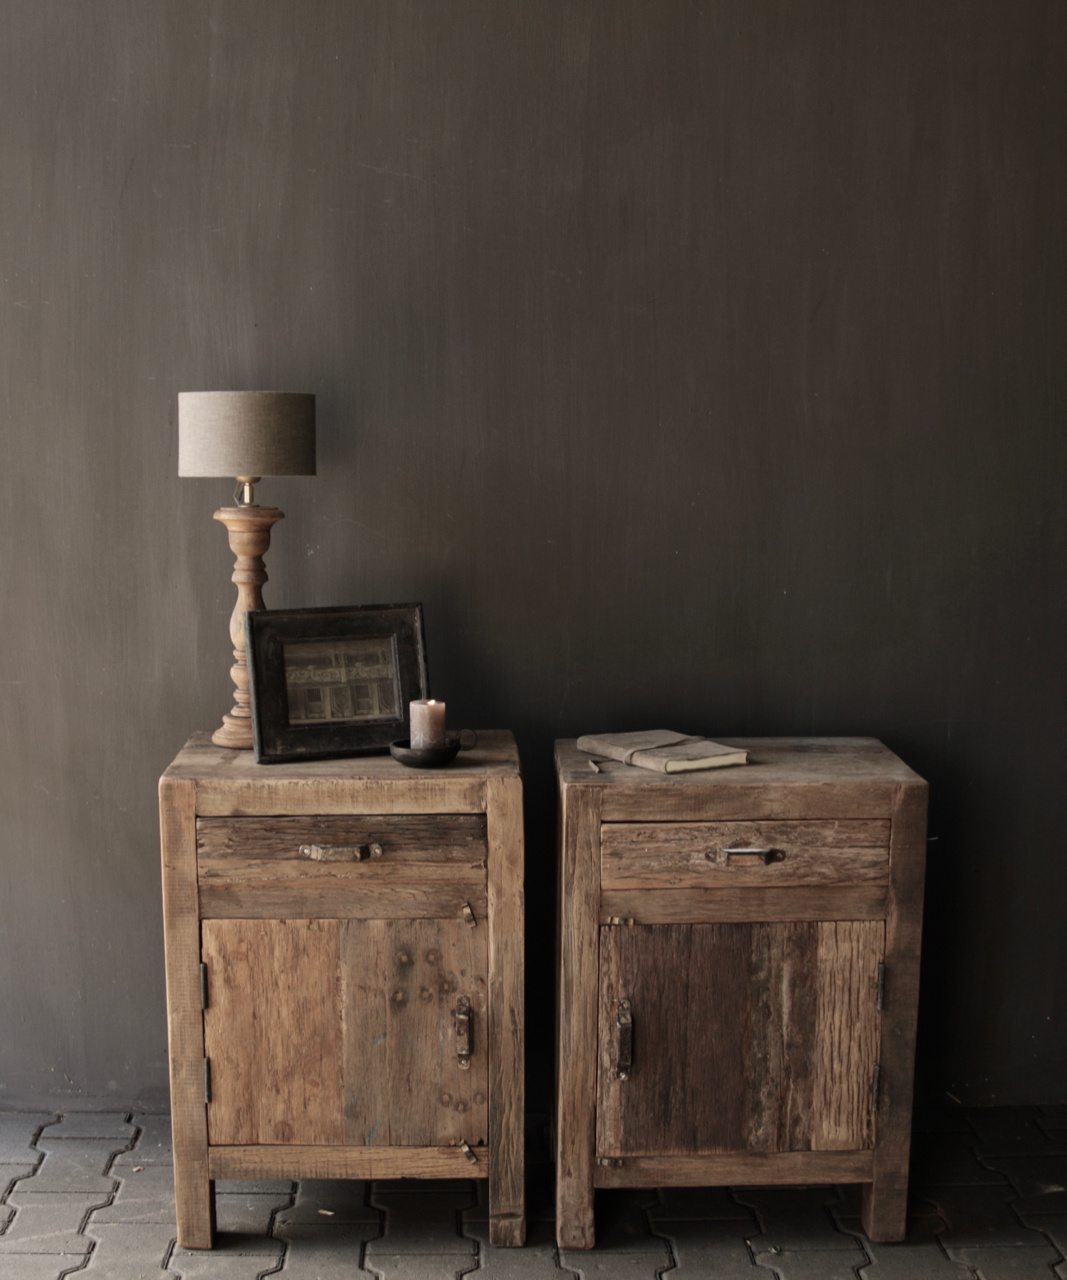 Old driftwood wooden cabinet or bedside table-1